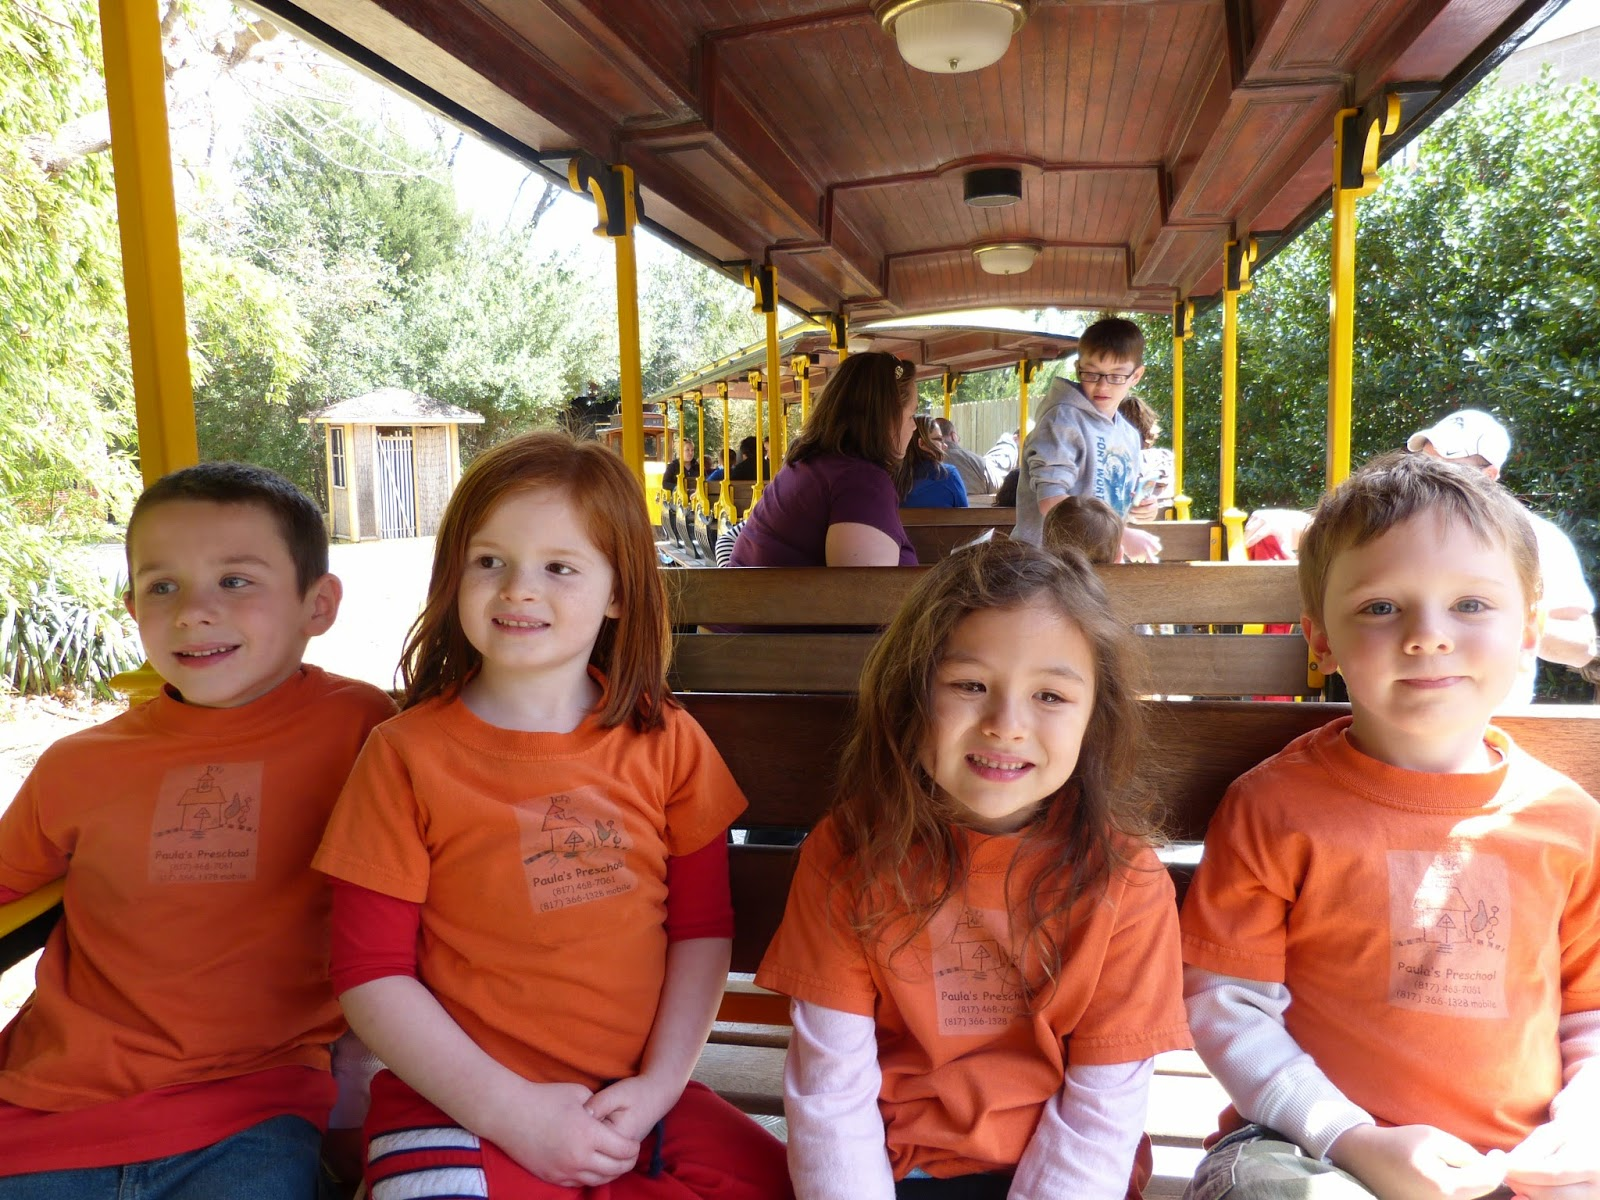 This blog post is packed with transportation themed learning activities and ideas for early childhood learning!